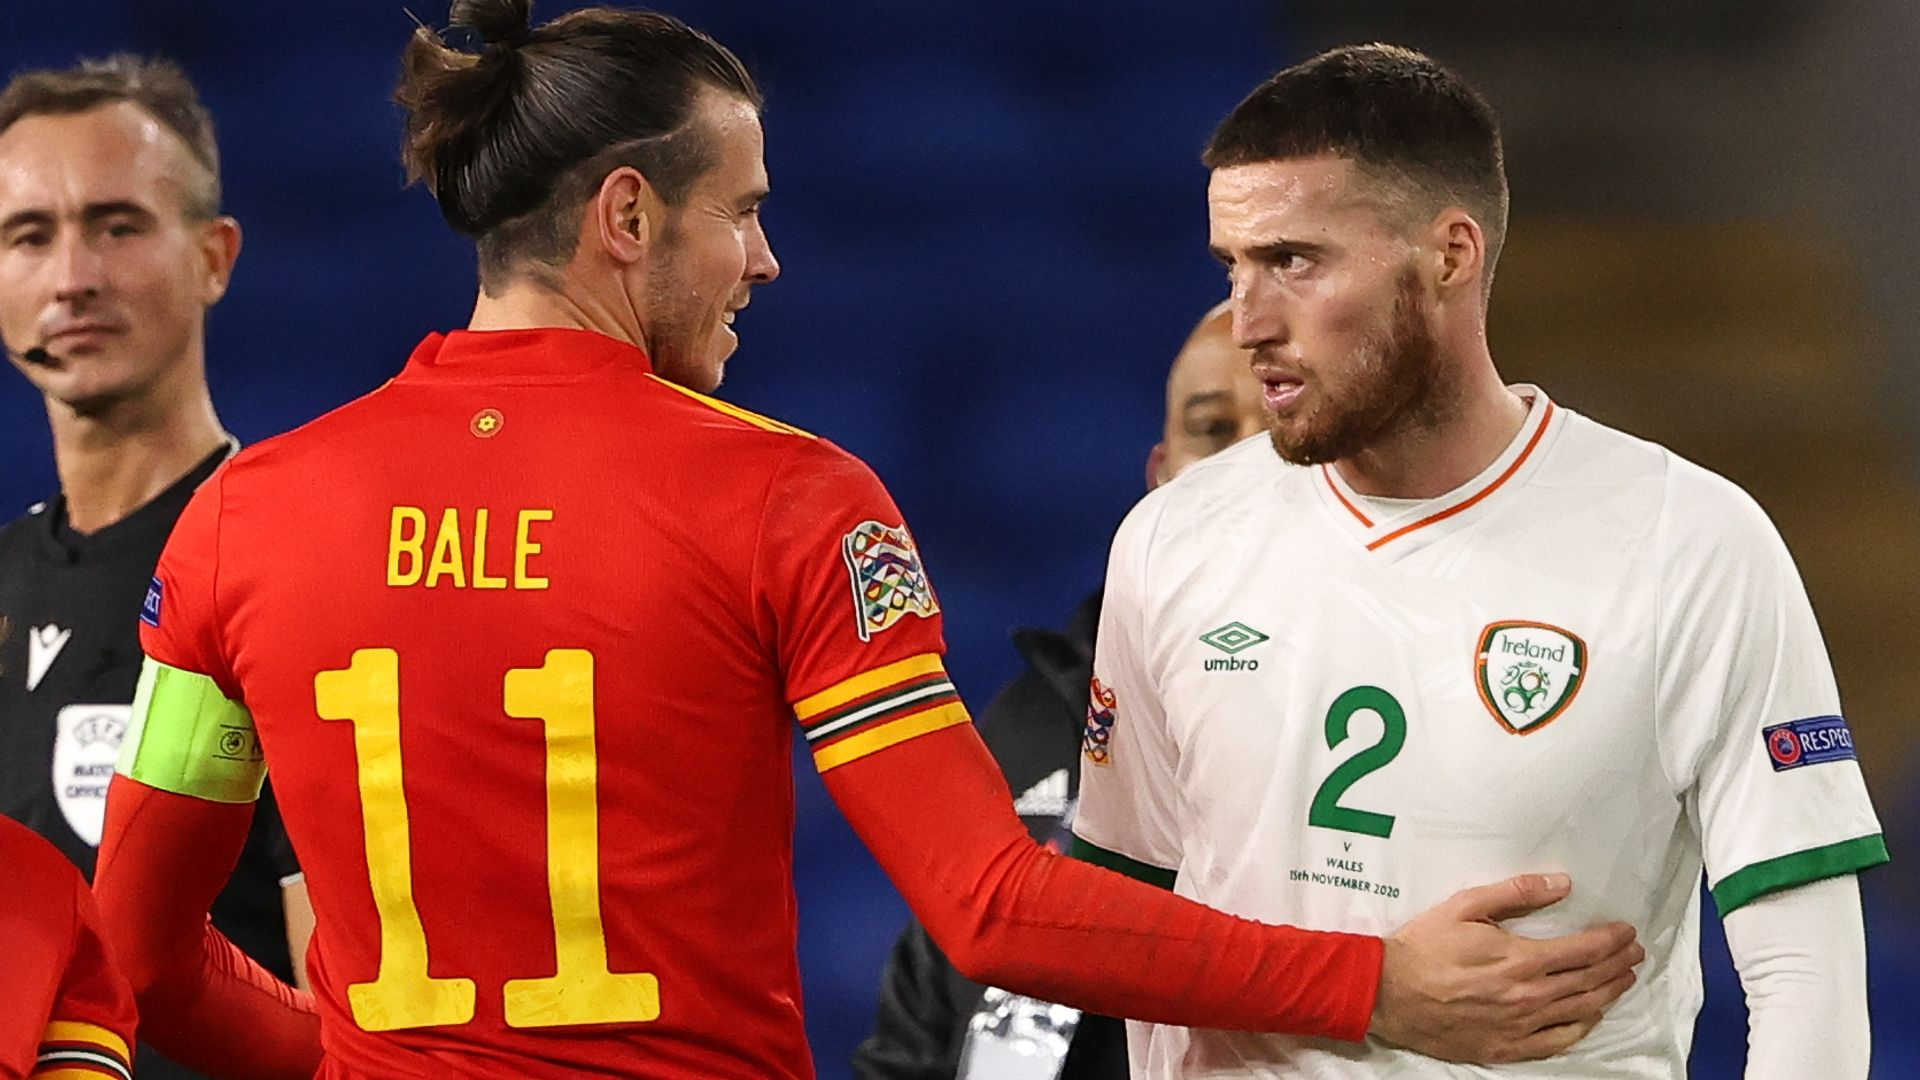 Bale 'concerned' after Doherty embrace